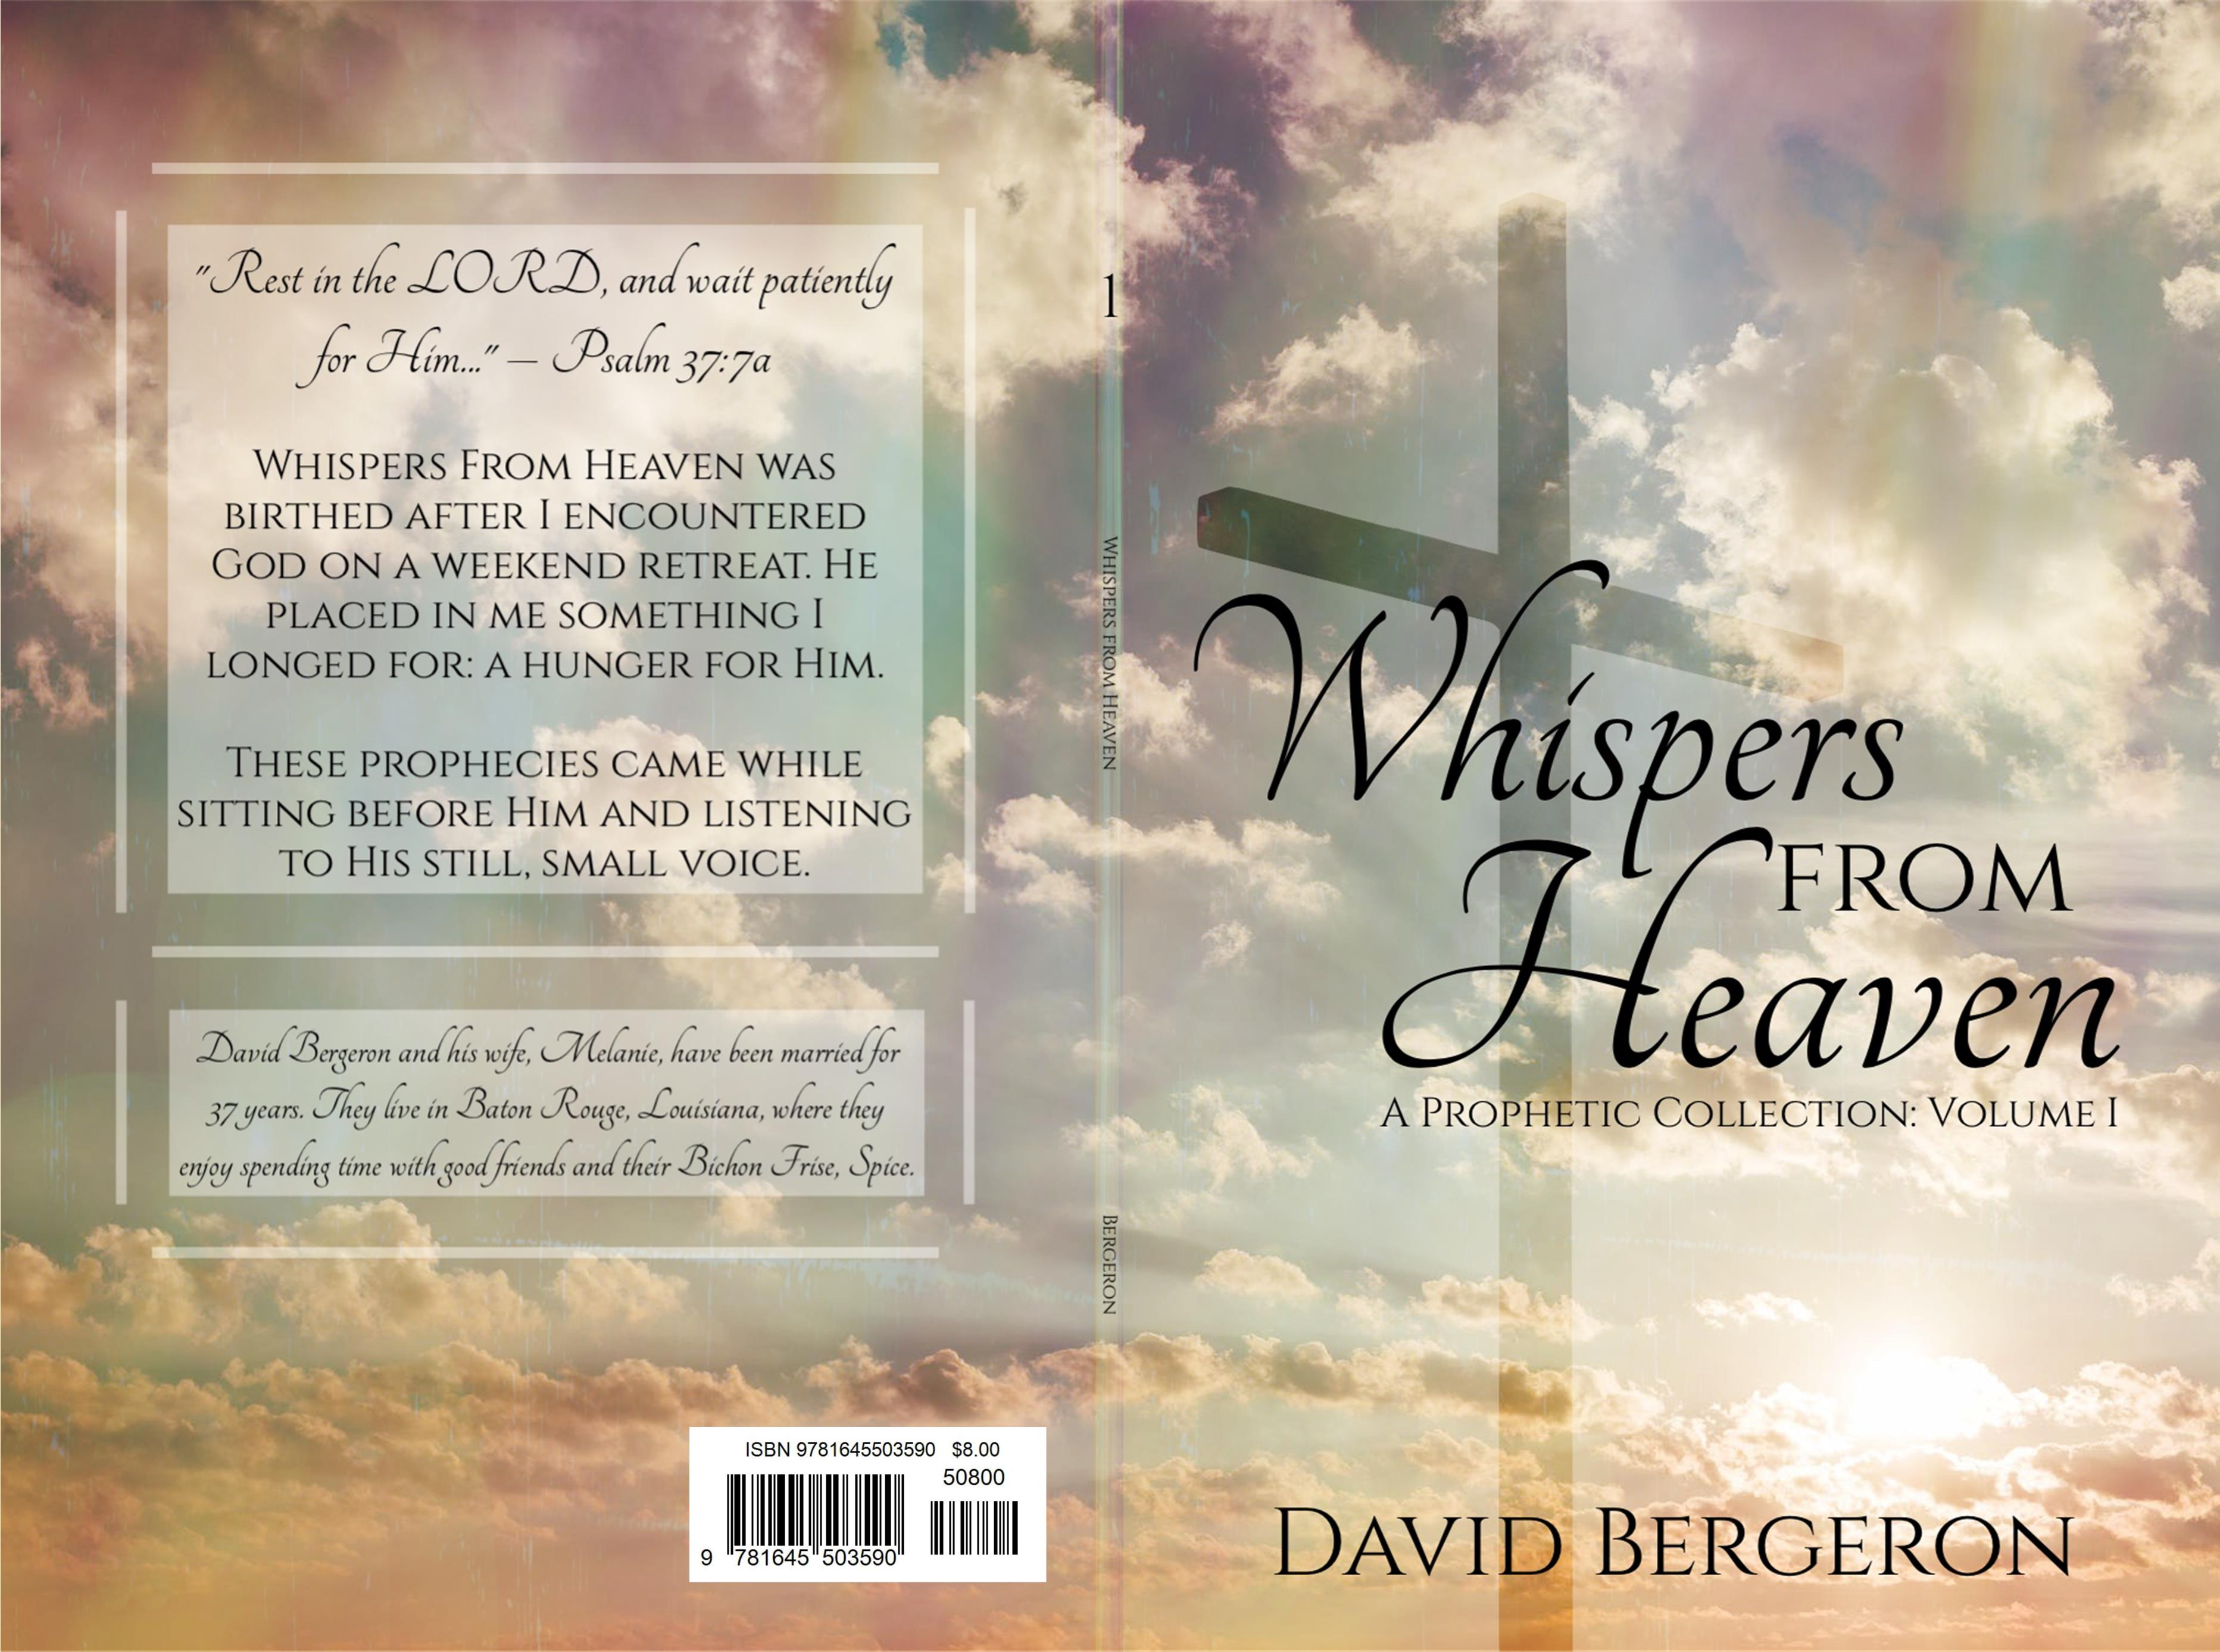 Whispers From Heaven Volume 1 cover image